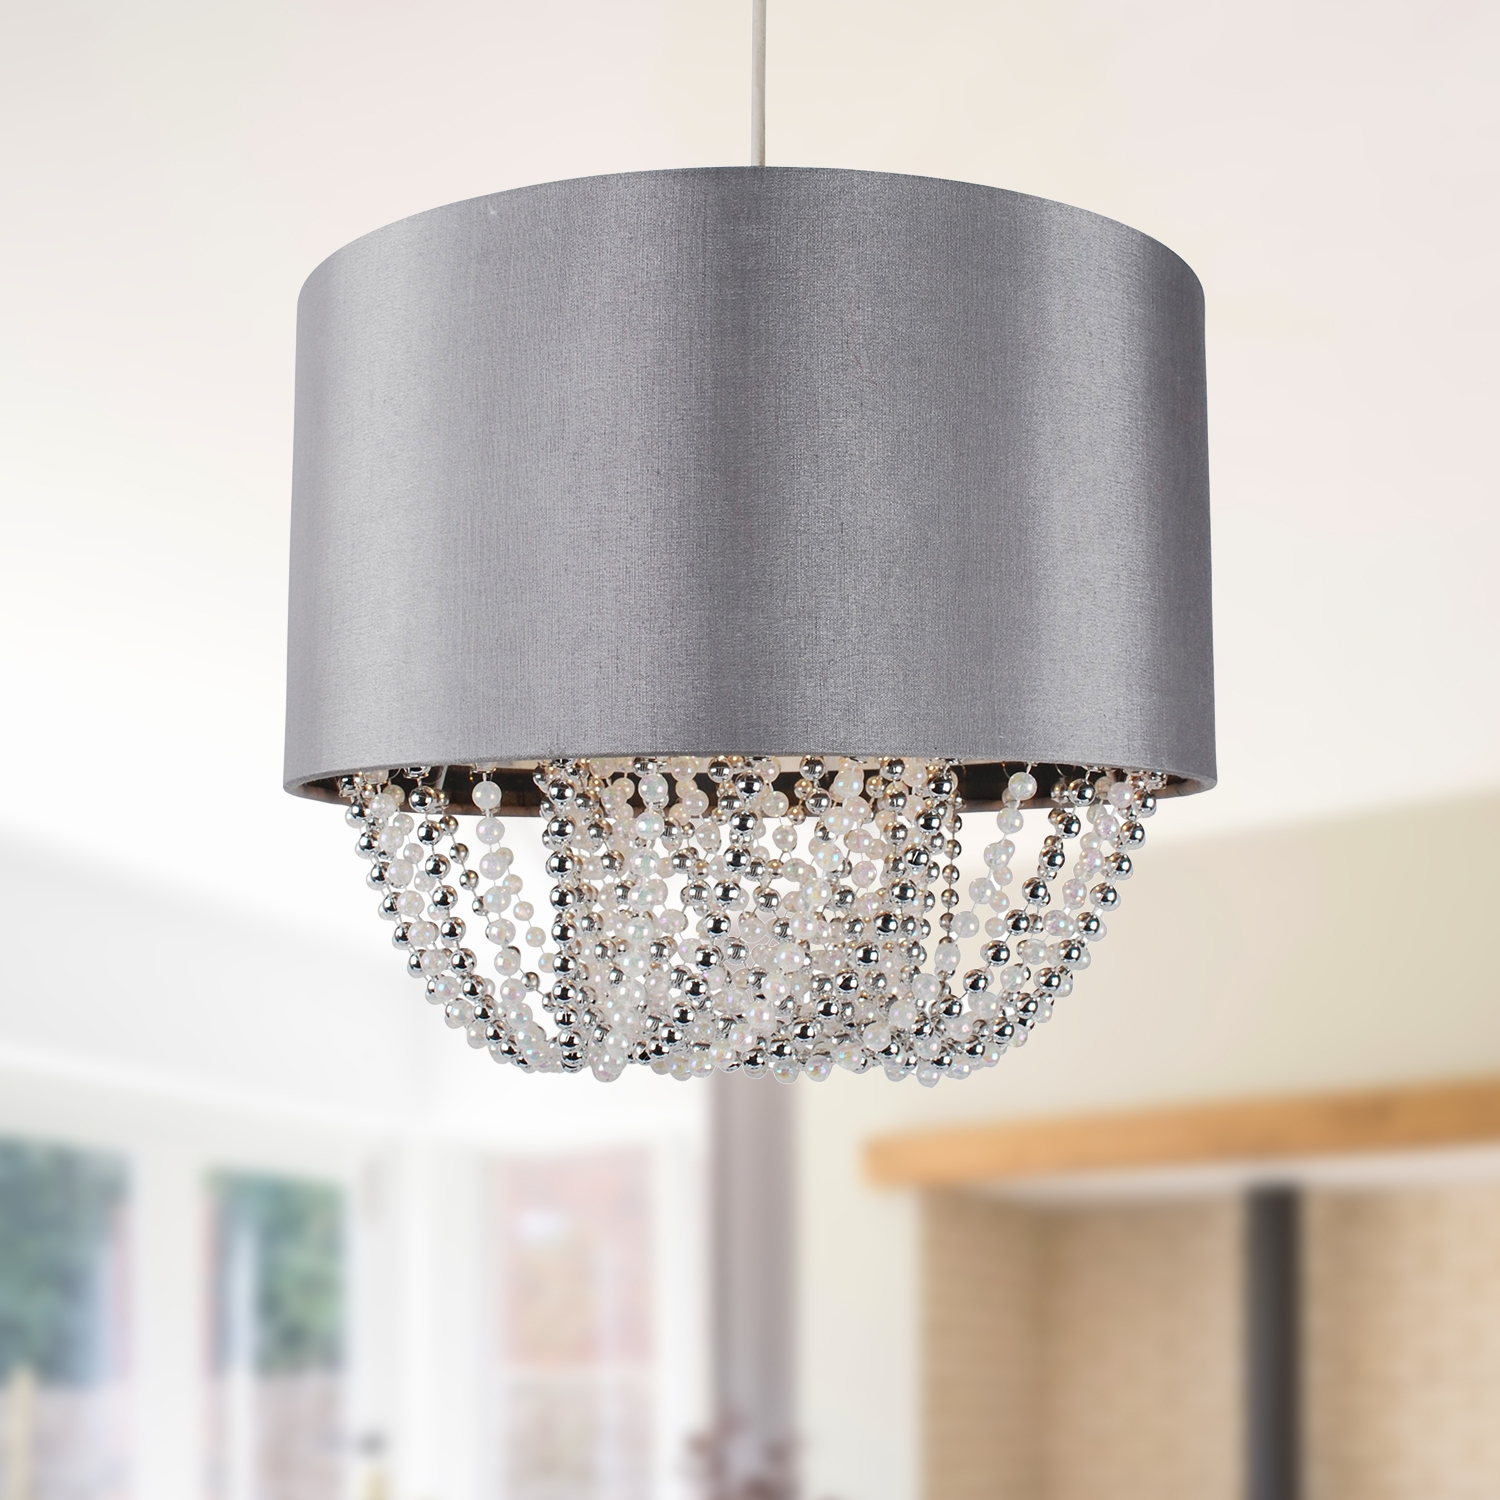 Grey Pendant Light Shade Grey Fabric Easy Fit Ceiling Light Shade W Chrome And Pearl